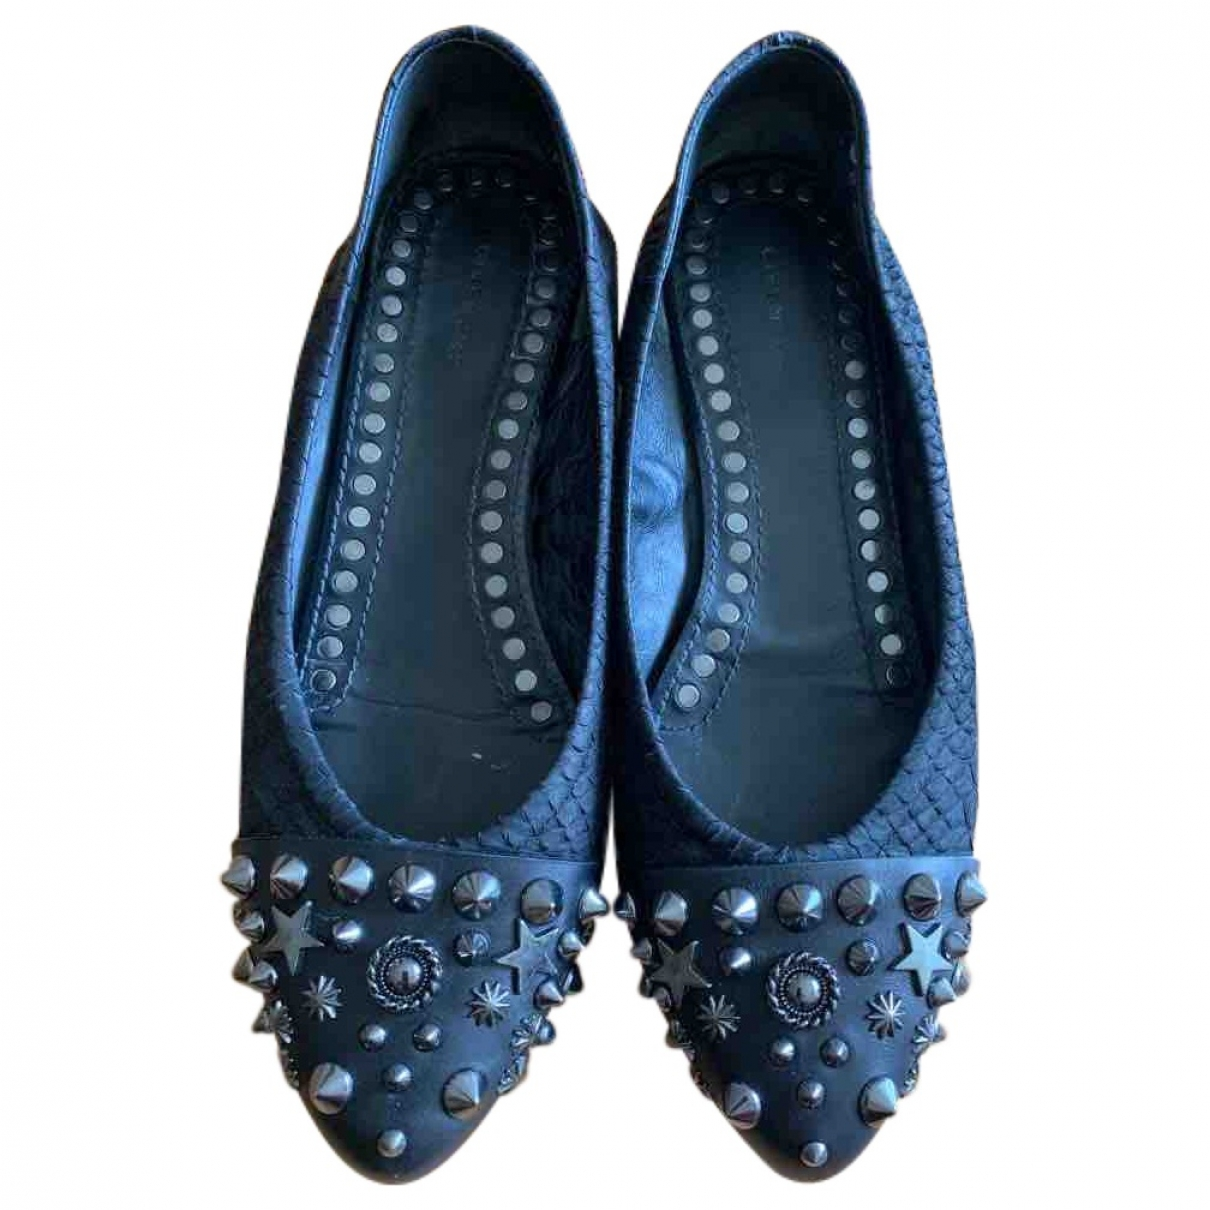 Givenchy \N Black Leather Ballet flats for Women 36 EU